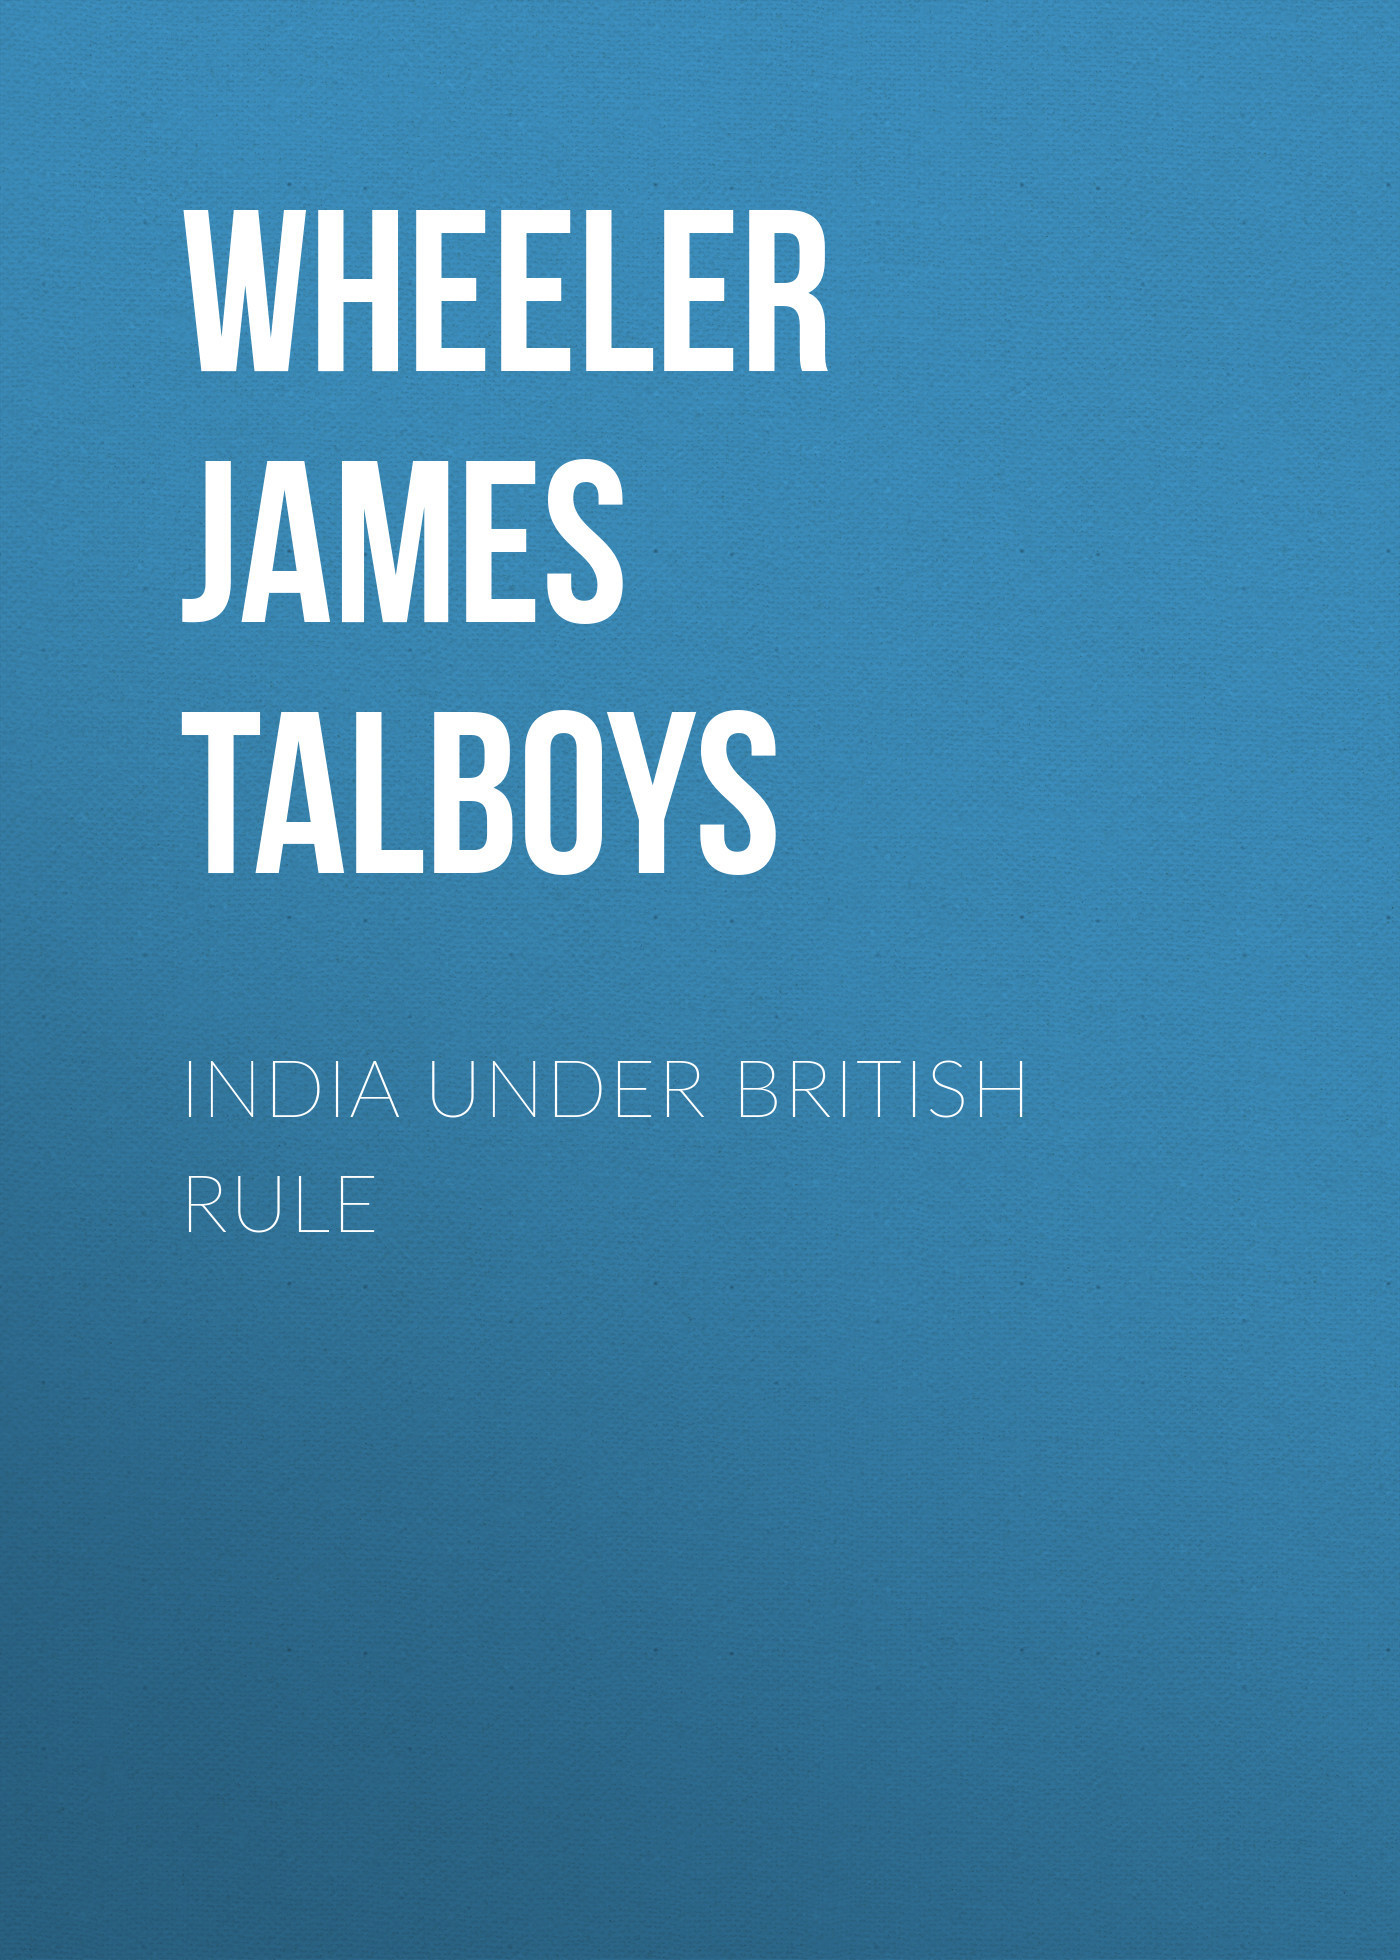 Wheeler James Talboys India Under British Rule каталог big